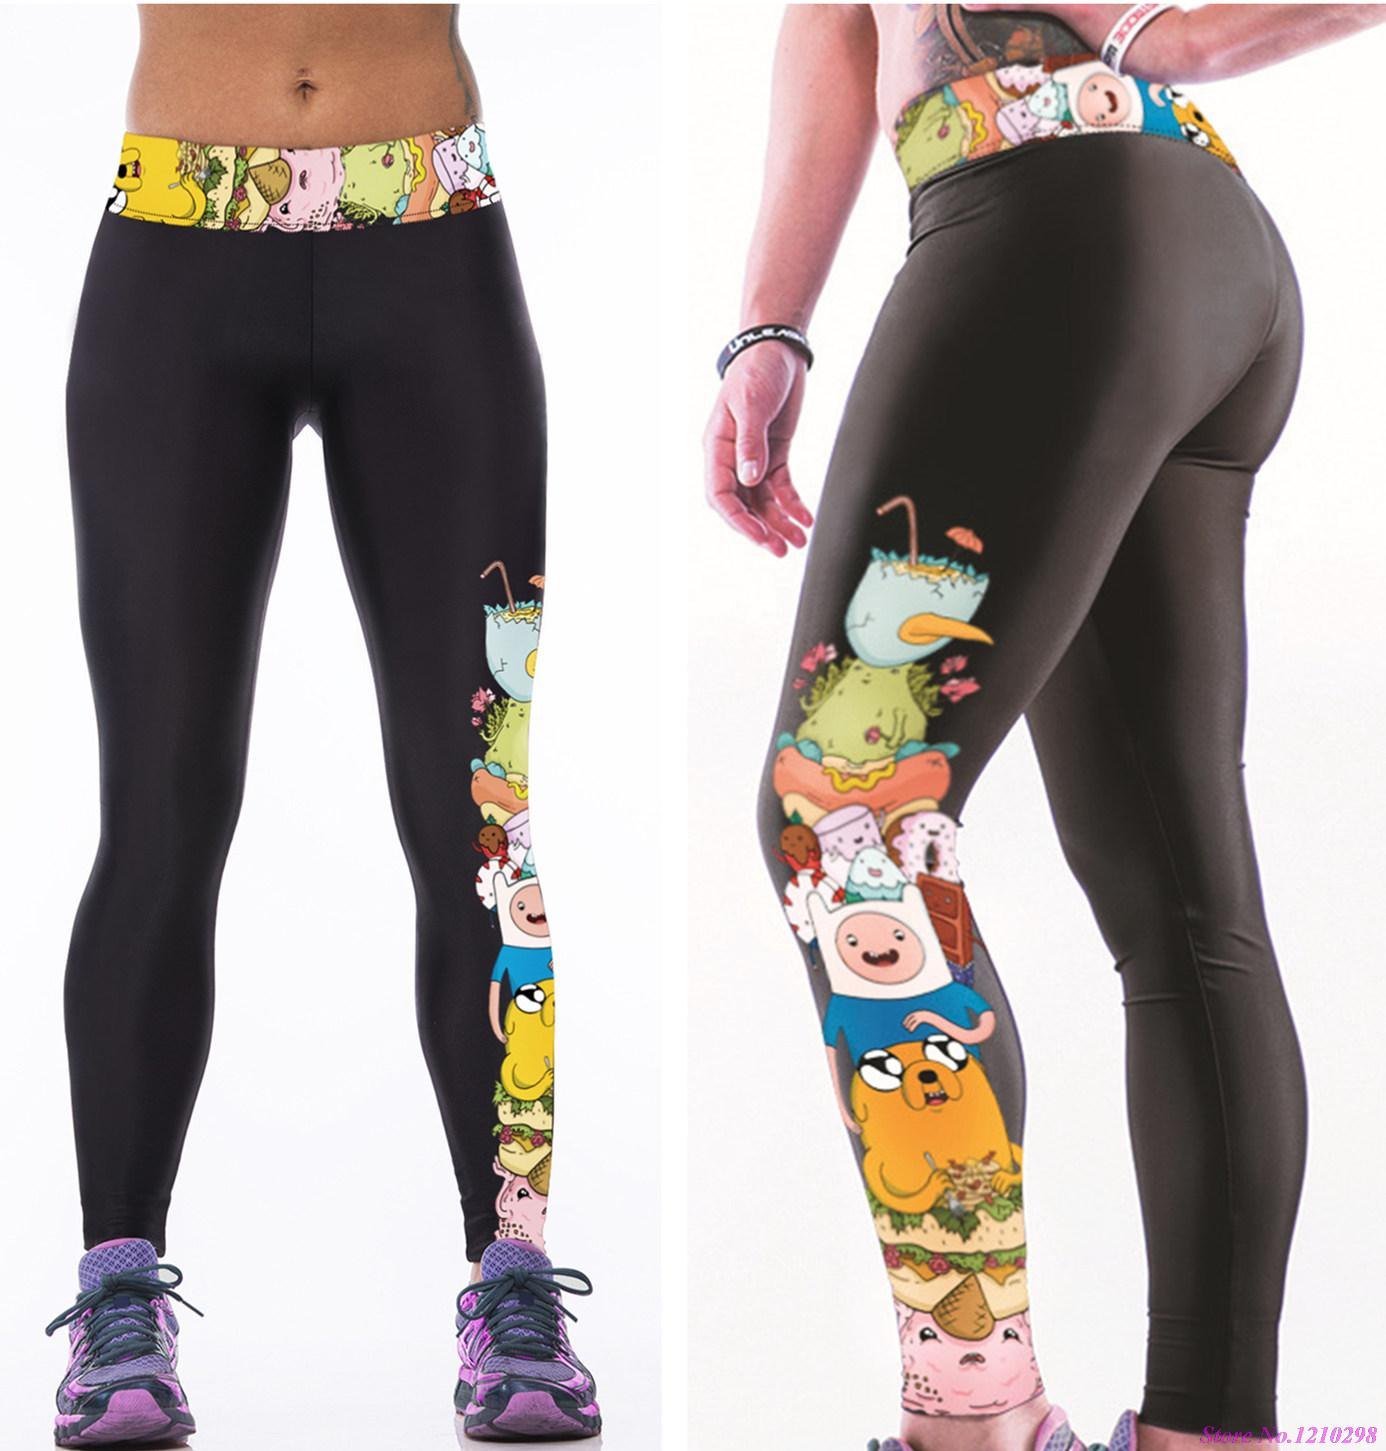 Description. Reminiscent of a mesmerizing kaleidoscope, the bright geometric pattern of these yoga pants is sure to hypnotize any onlookers. The cheerful yellow and neon green colors are grounded with flashes of dark purple.5/5(2).